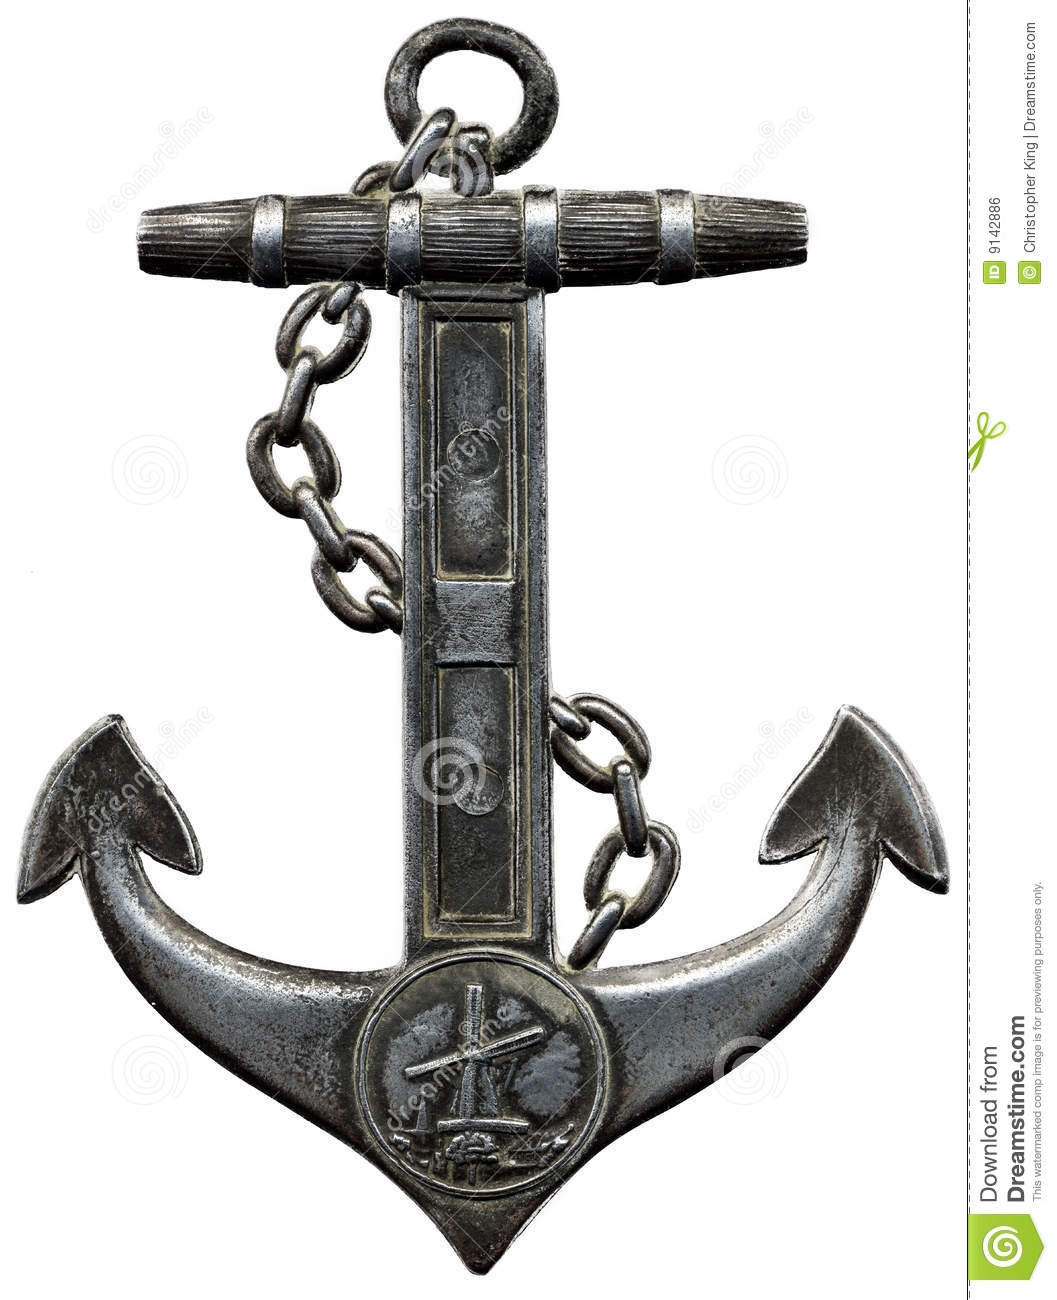 anchor clipart no background - photo #32